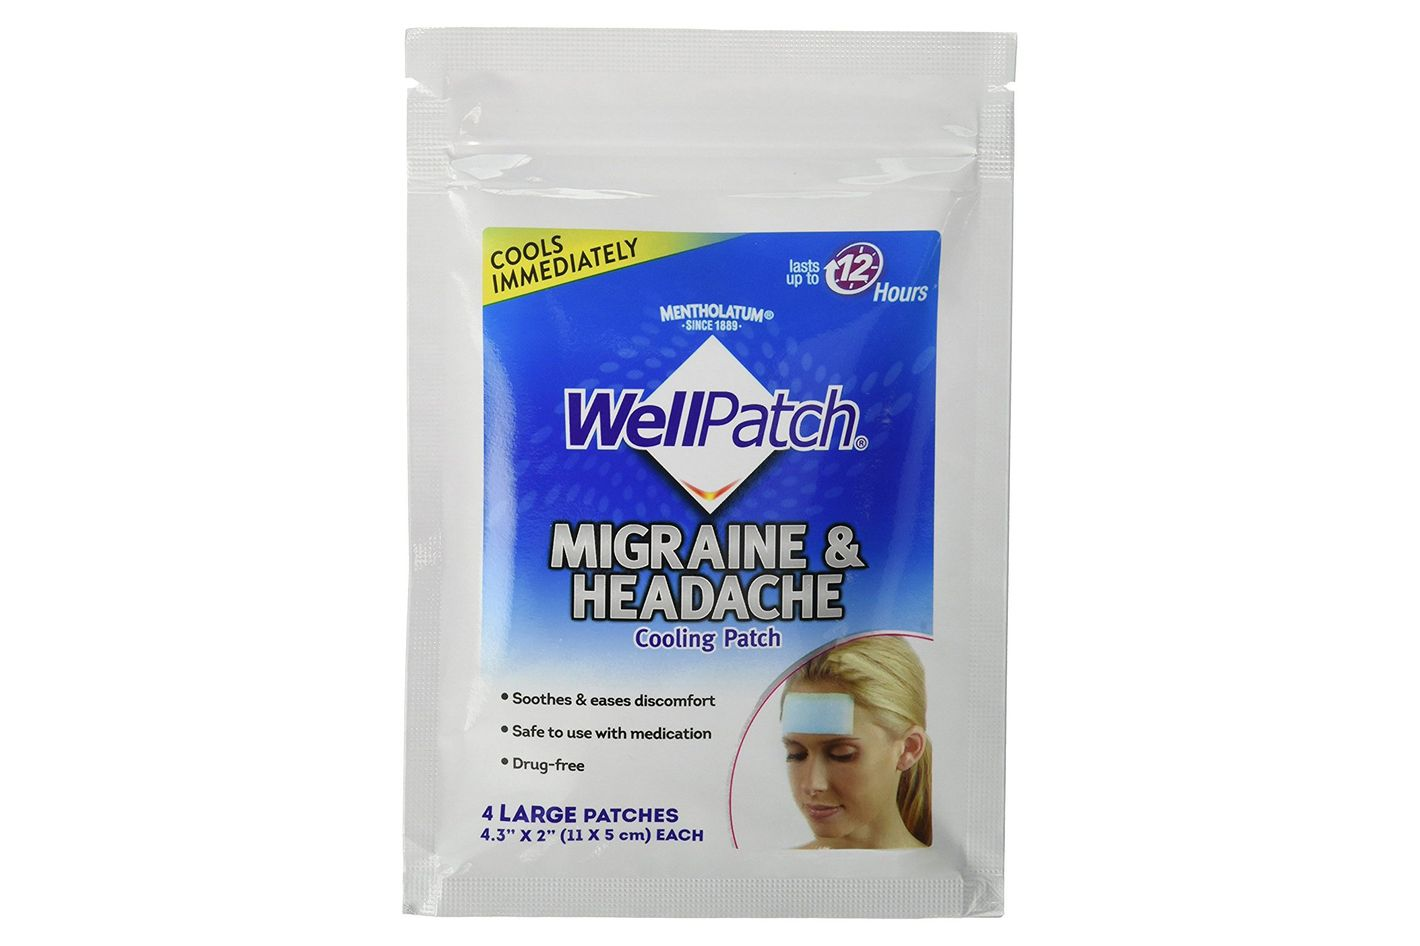 WellPatch Migraine & Headache Cooling Patch, 4 Patches